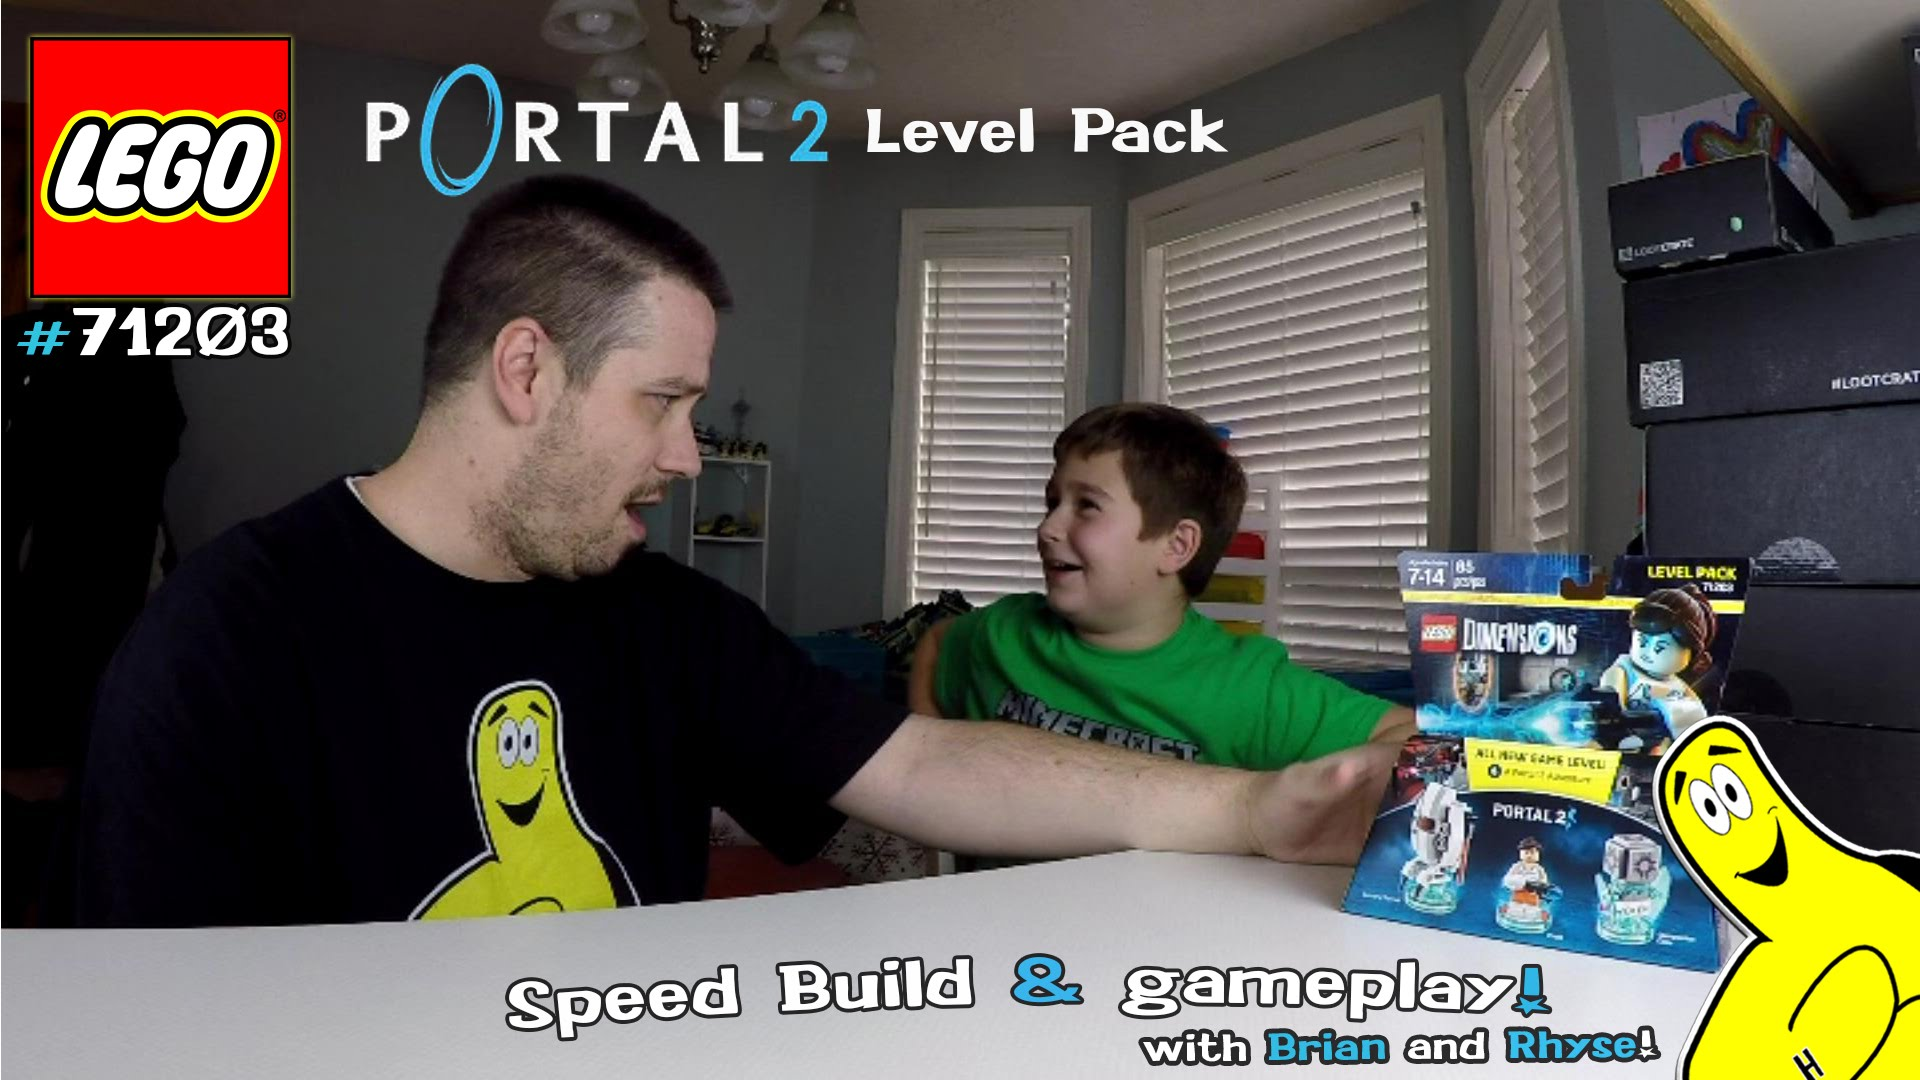 Lego Dimensions: #71203 Portal 2 LEVEL Pack Unboxing/SpeedBuild/Gameplay – HTG